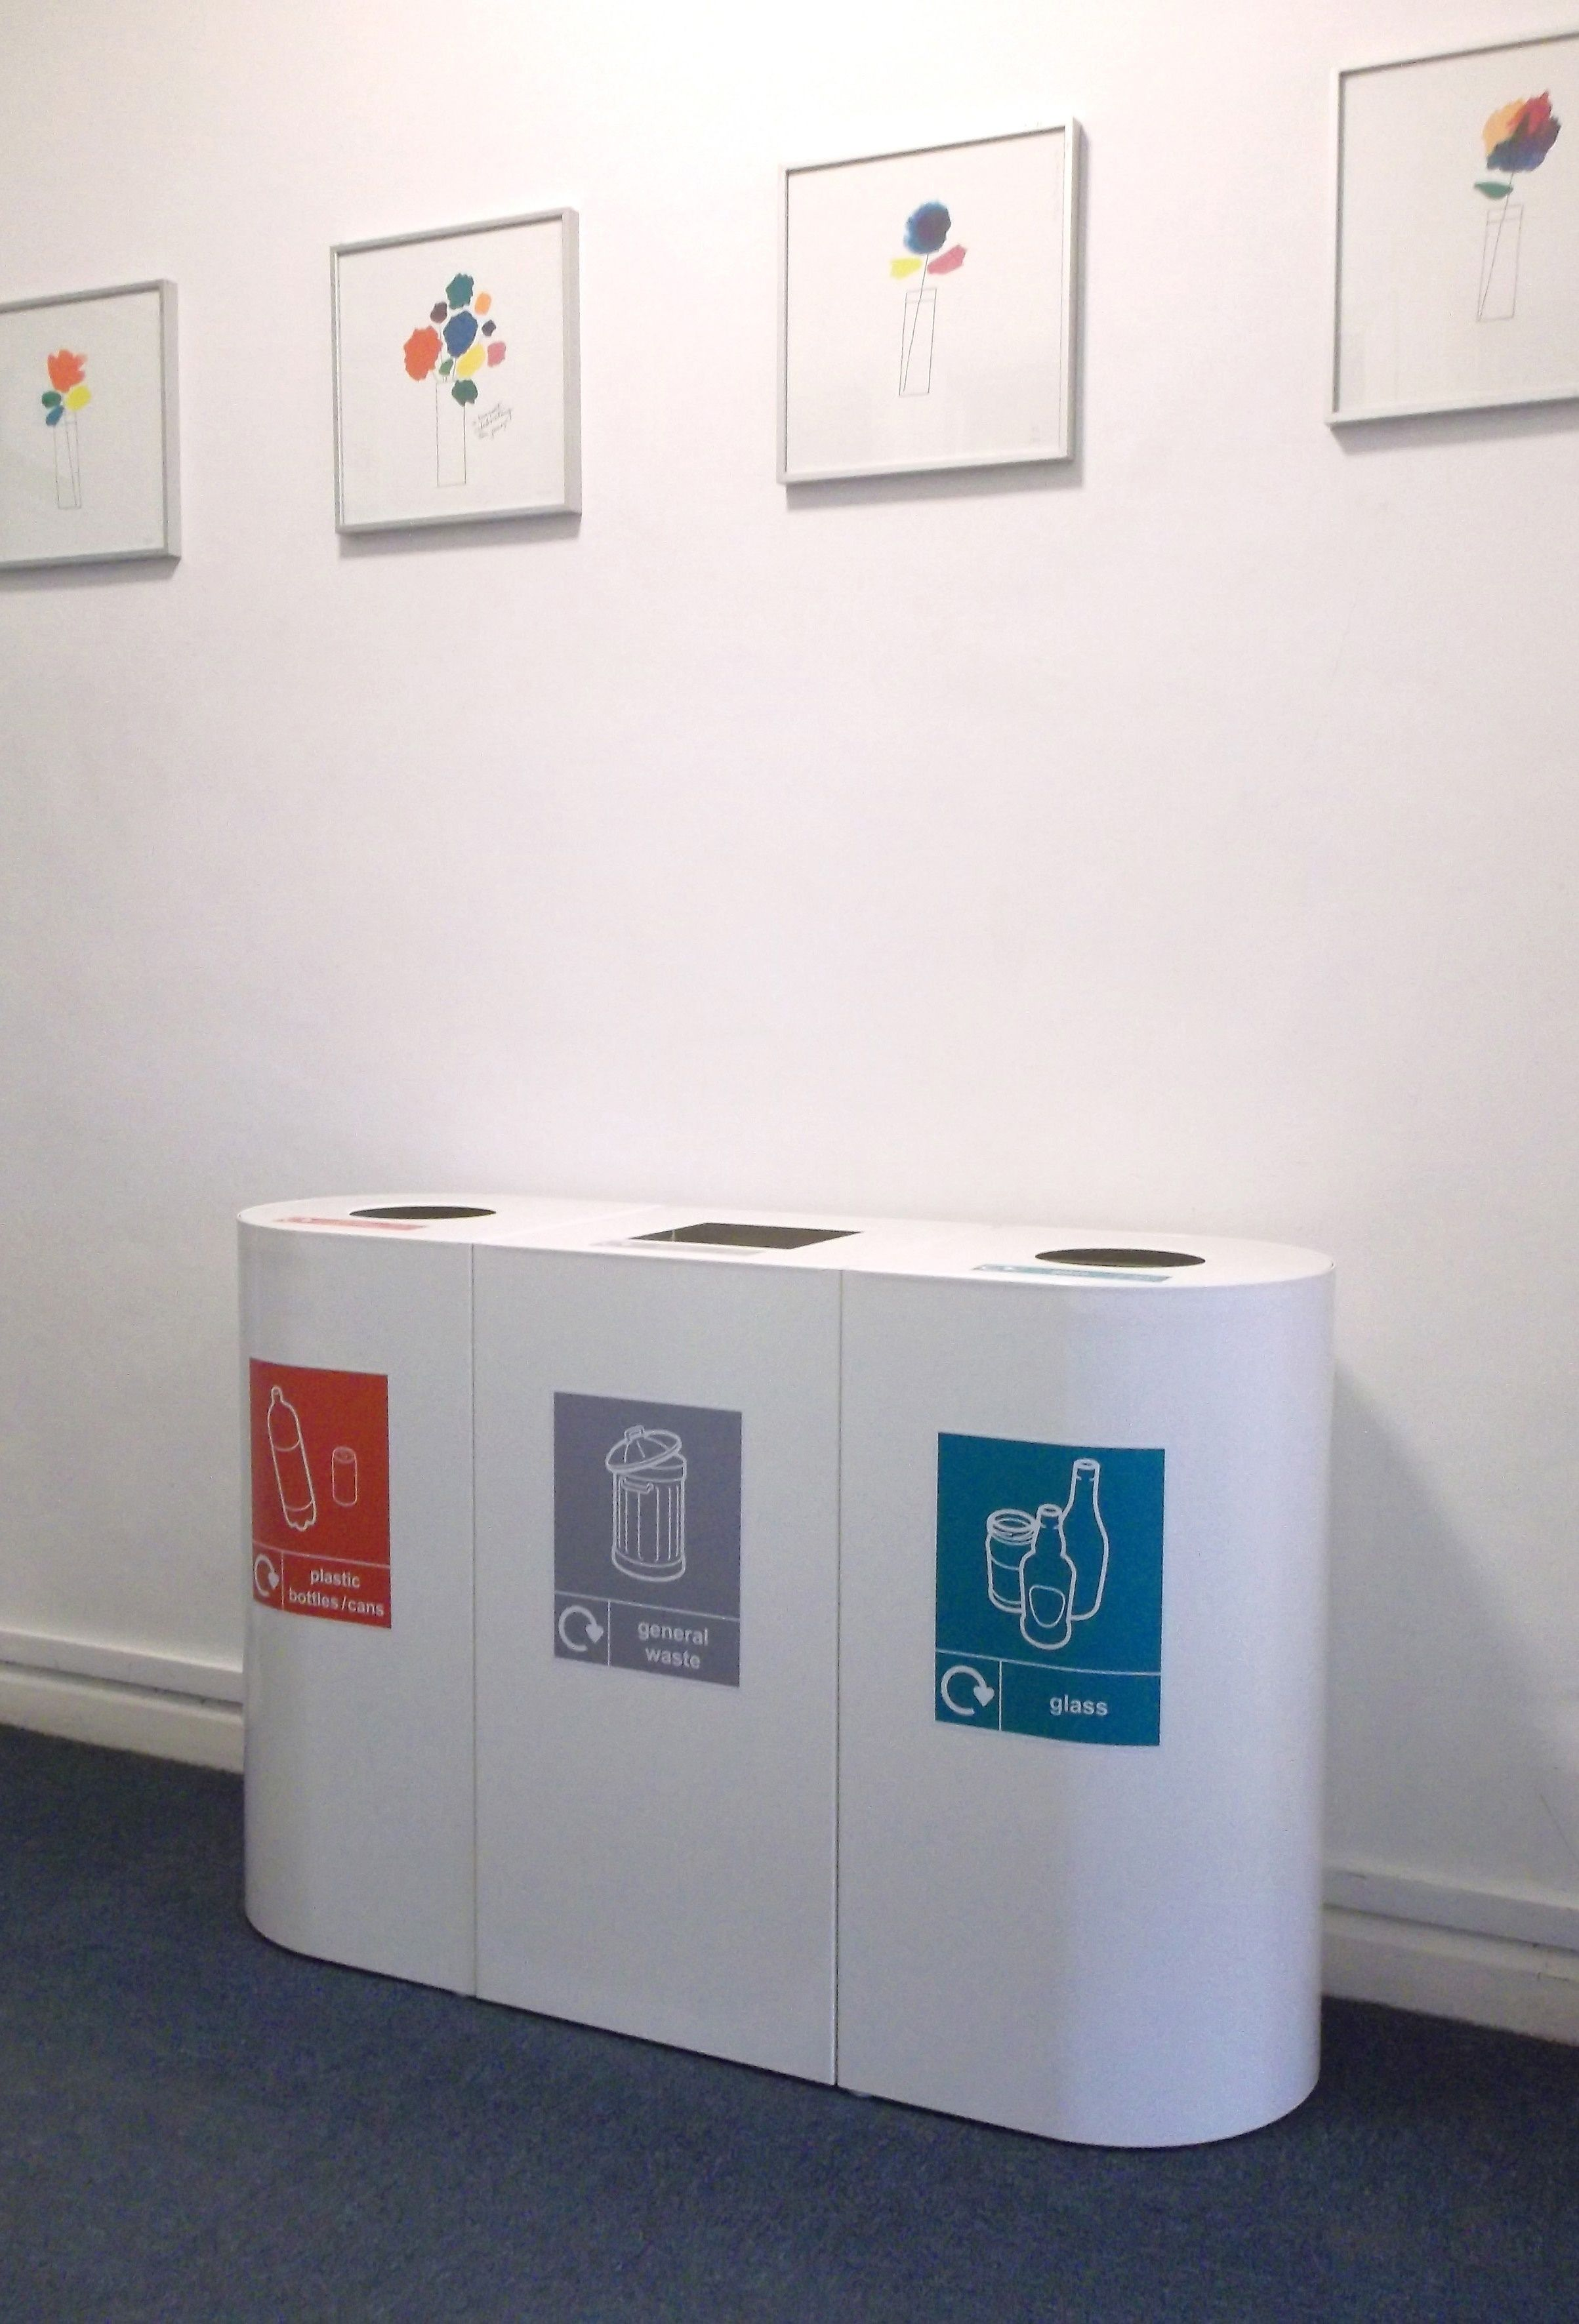 Charmant Popular Recycling Bins To Easily Organise Recycling